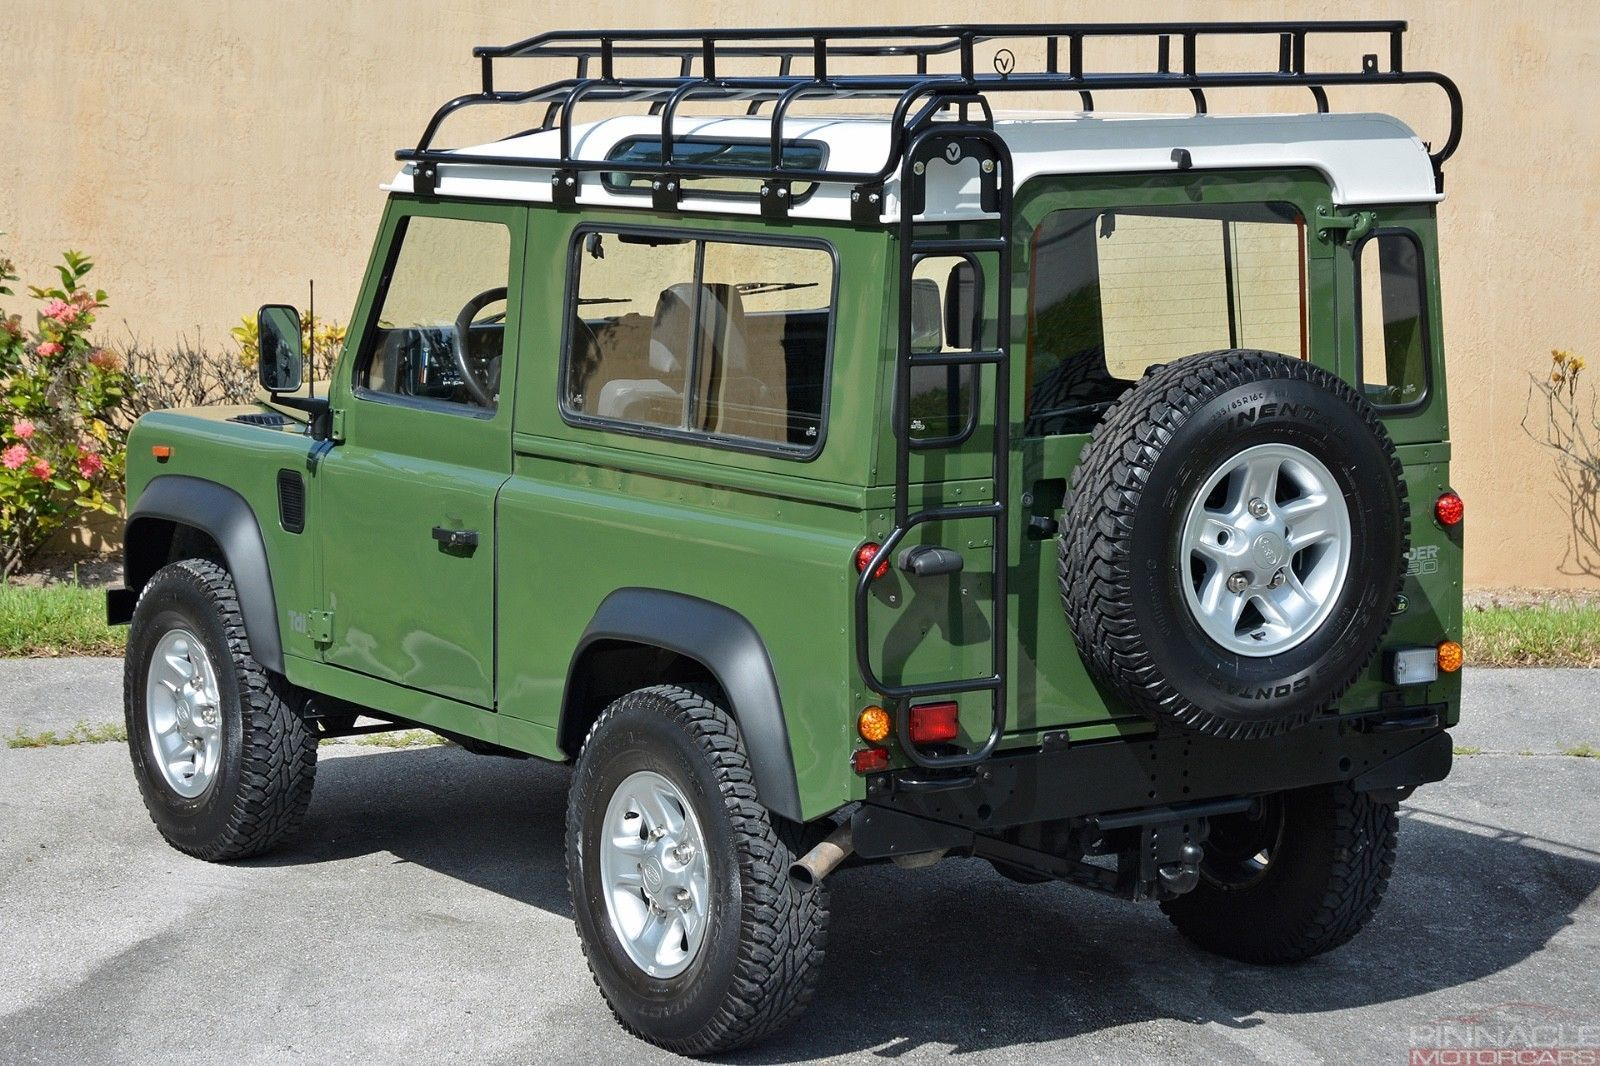 1992 Land Rover Defender 90 Land Rover Defender Land Rover